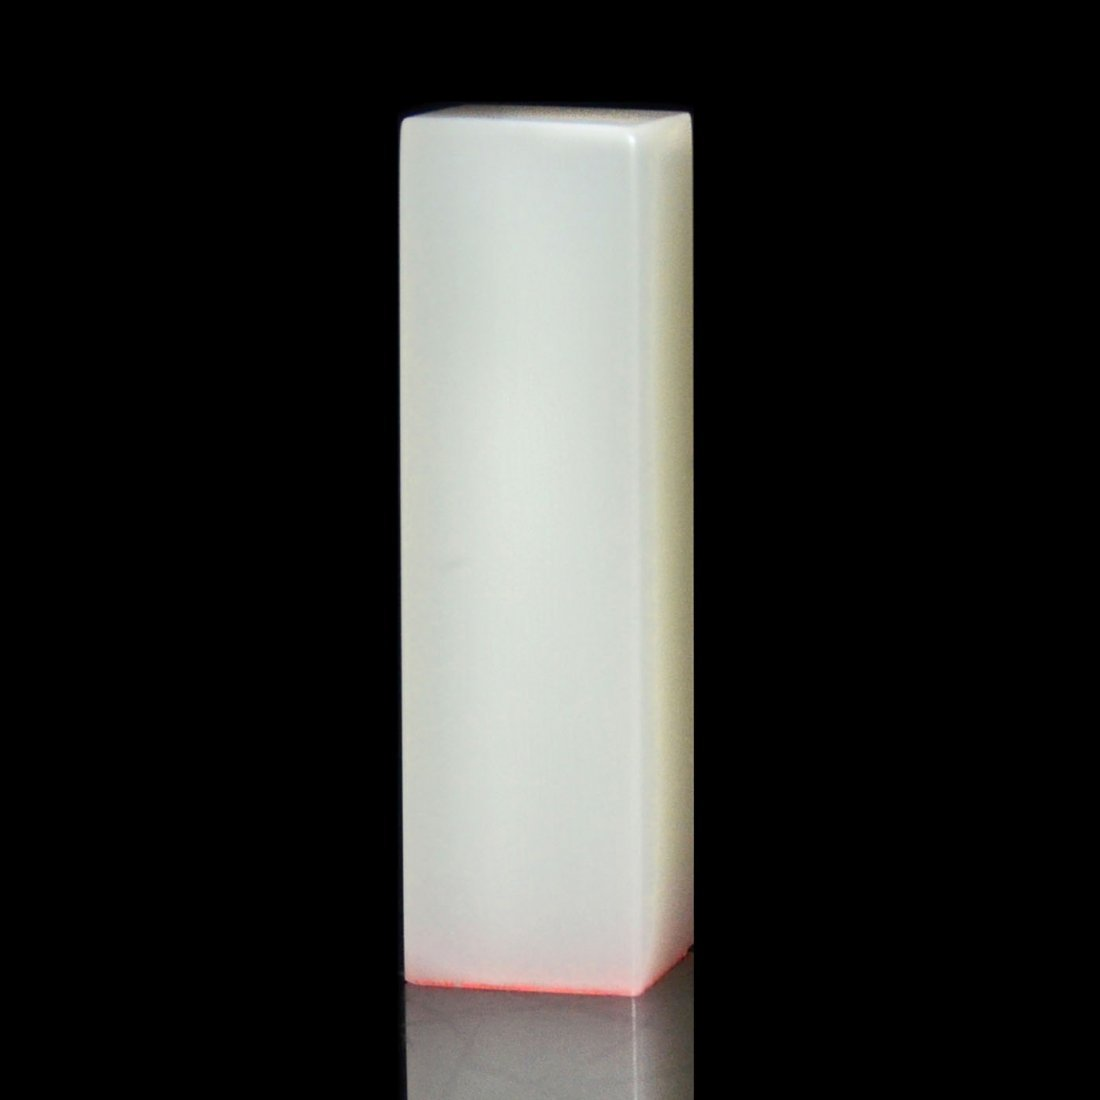 A Translucent White Furong Stone Columnar Seal